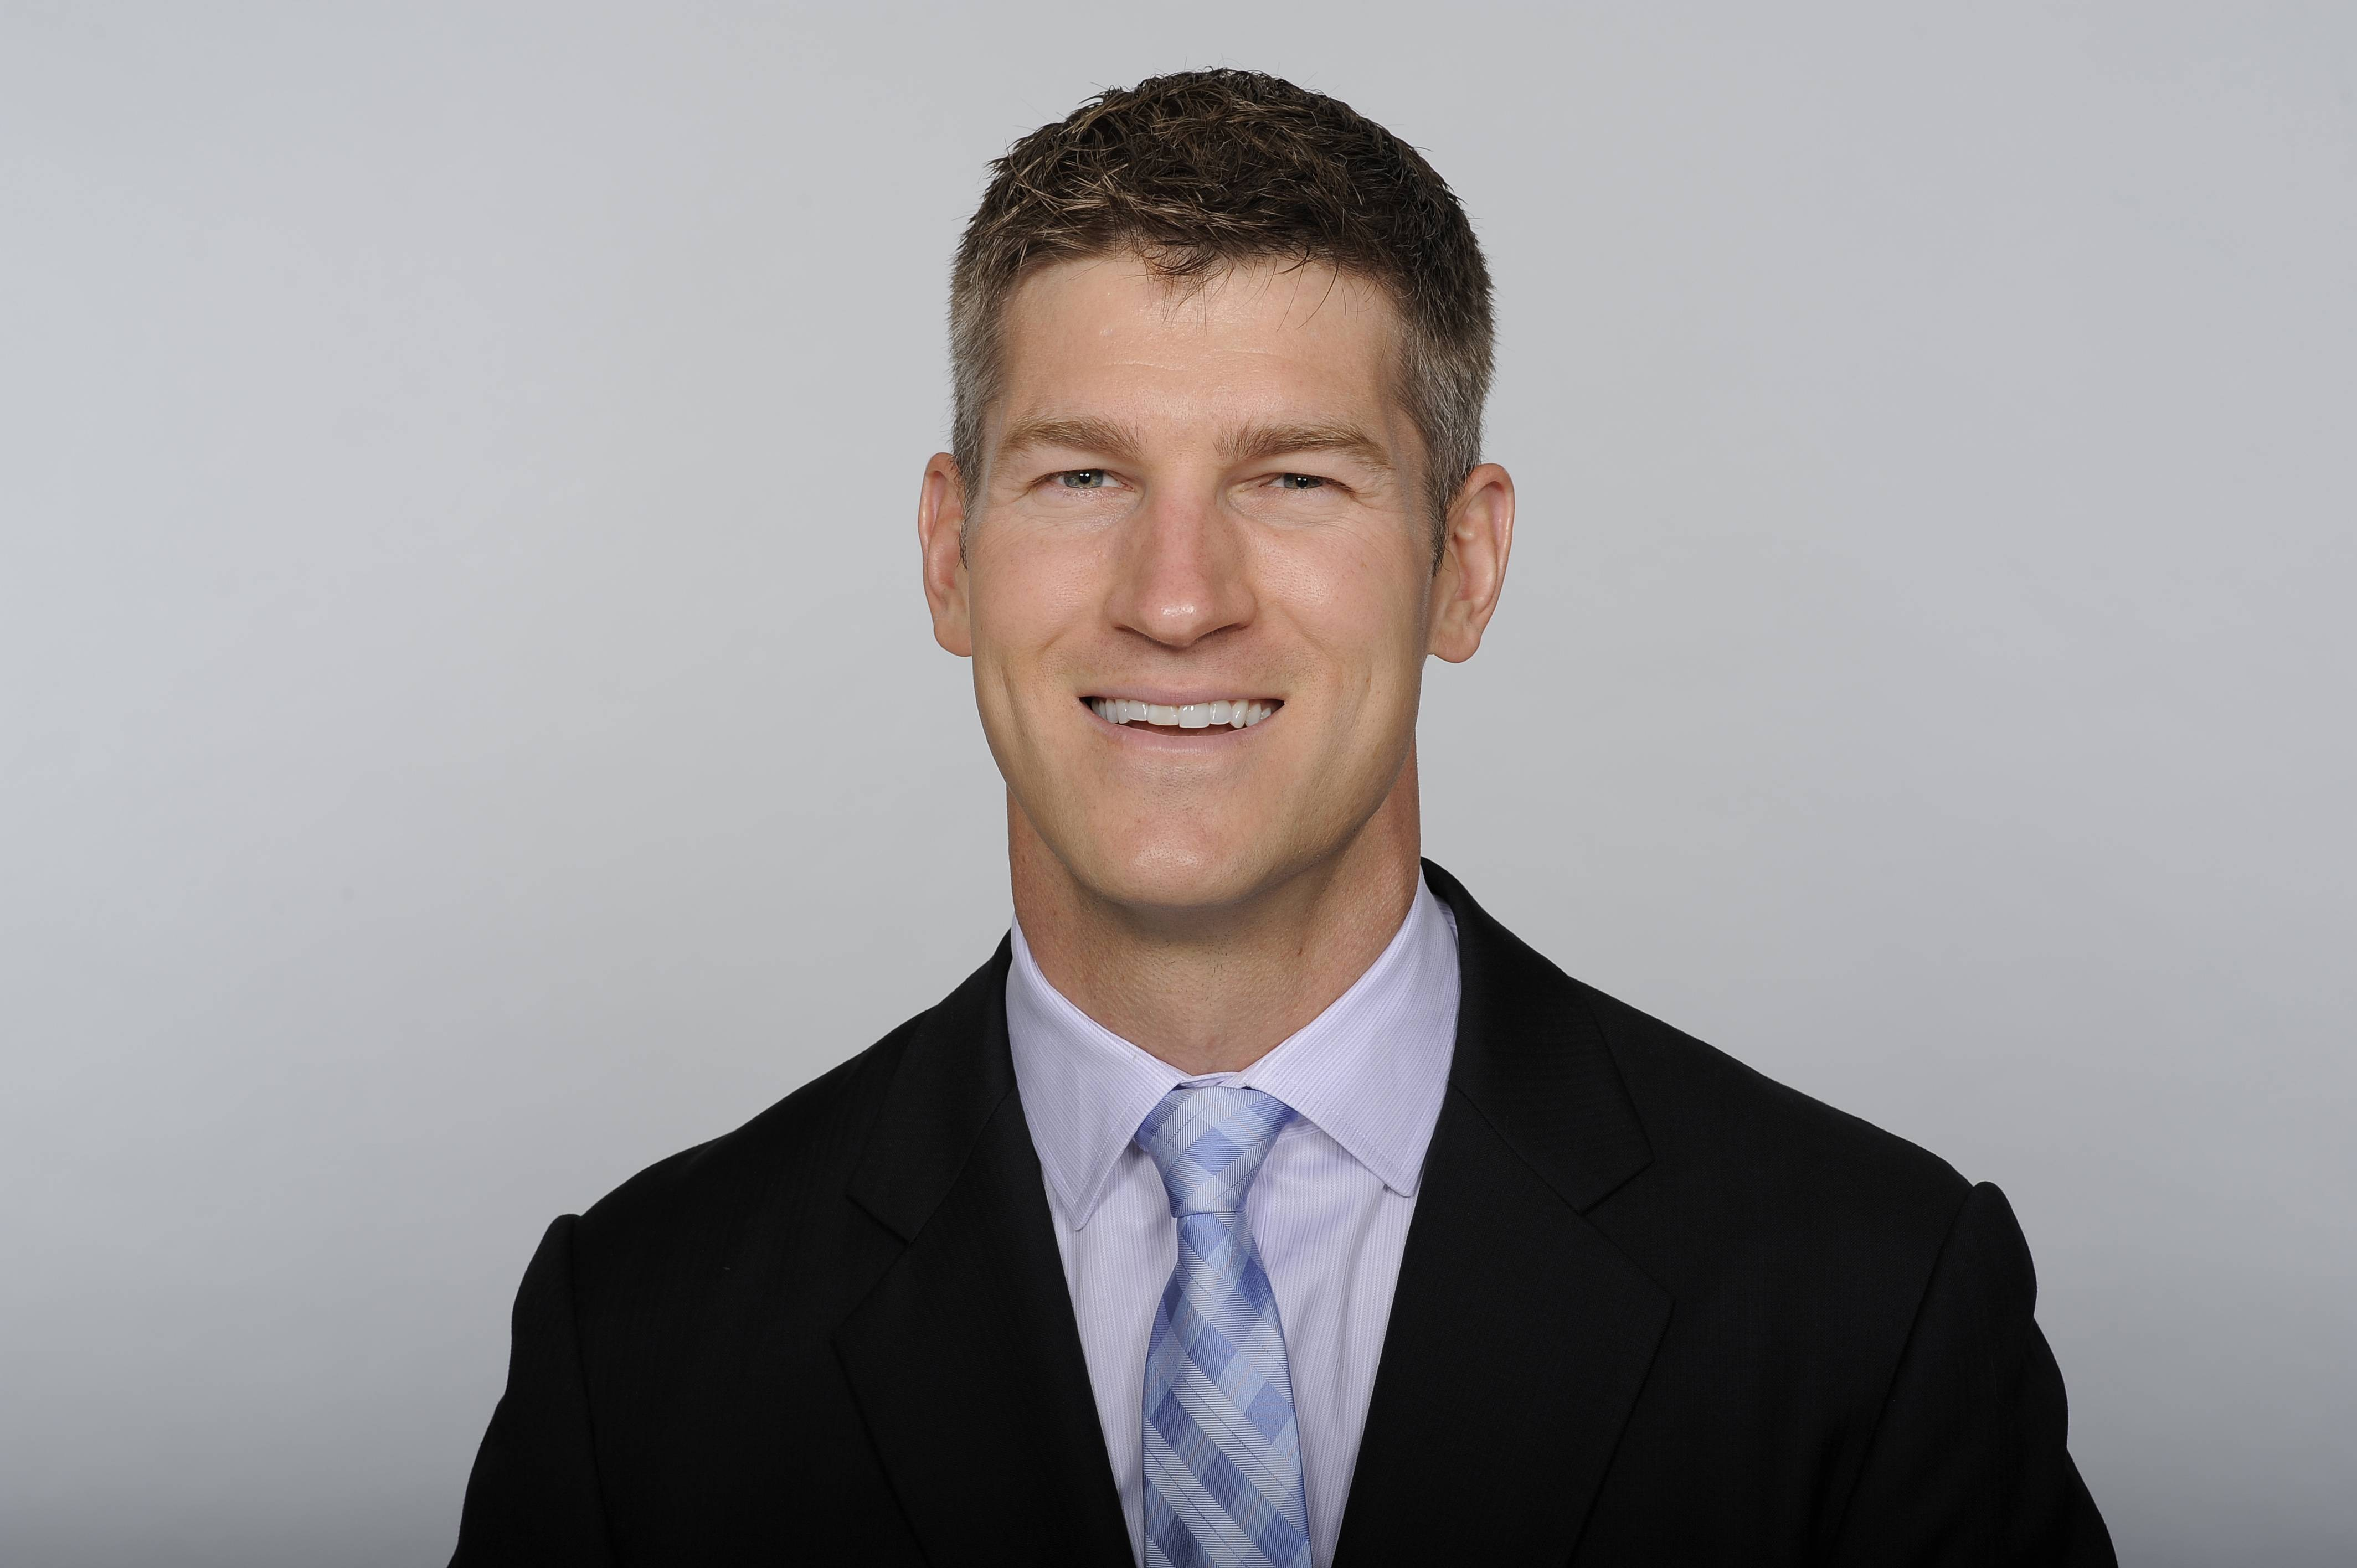 Ryan Pace, an executive with the New Orleans Saints, is the new general manager of the Chicago Bears.